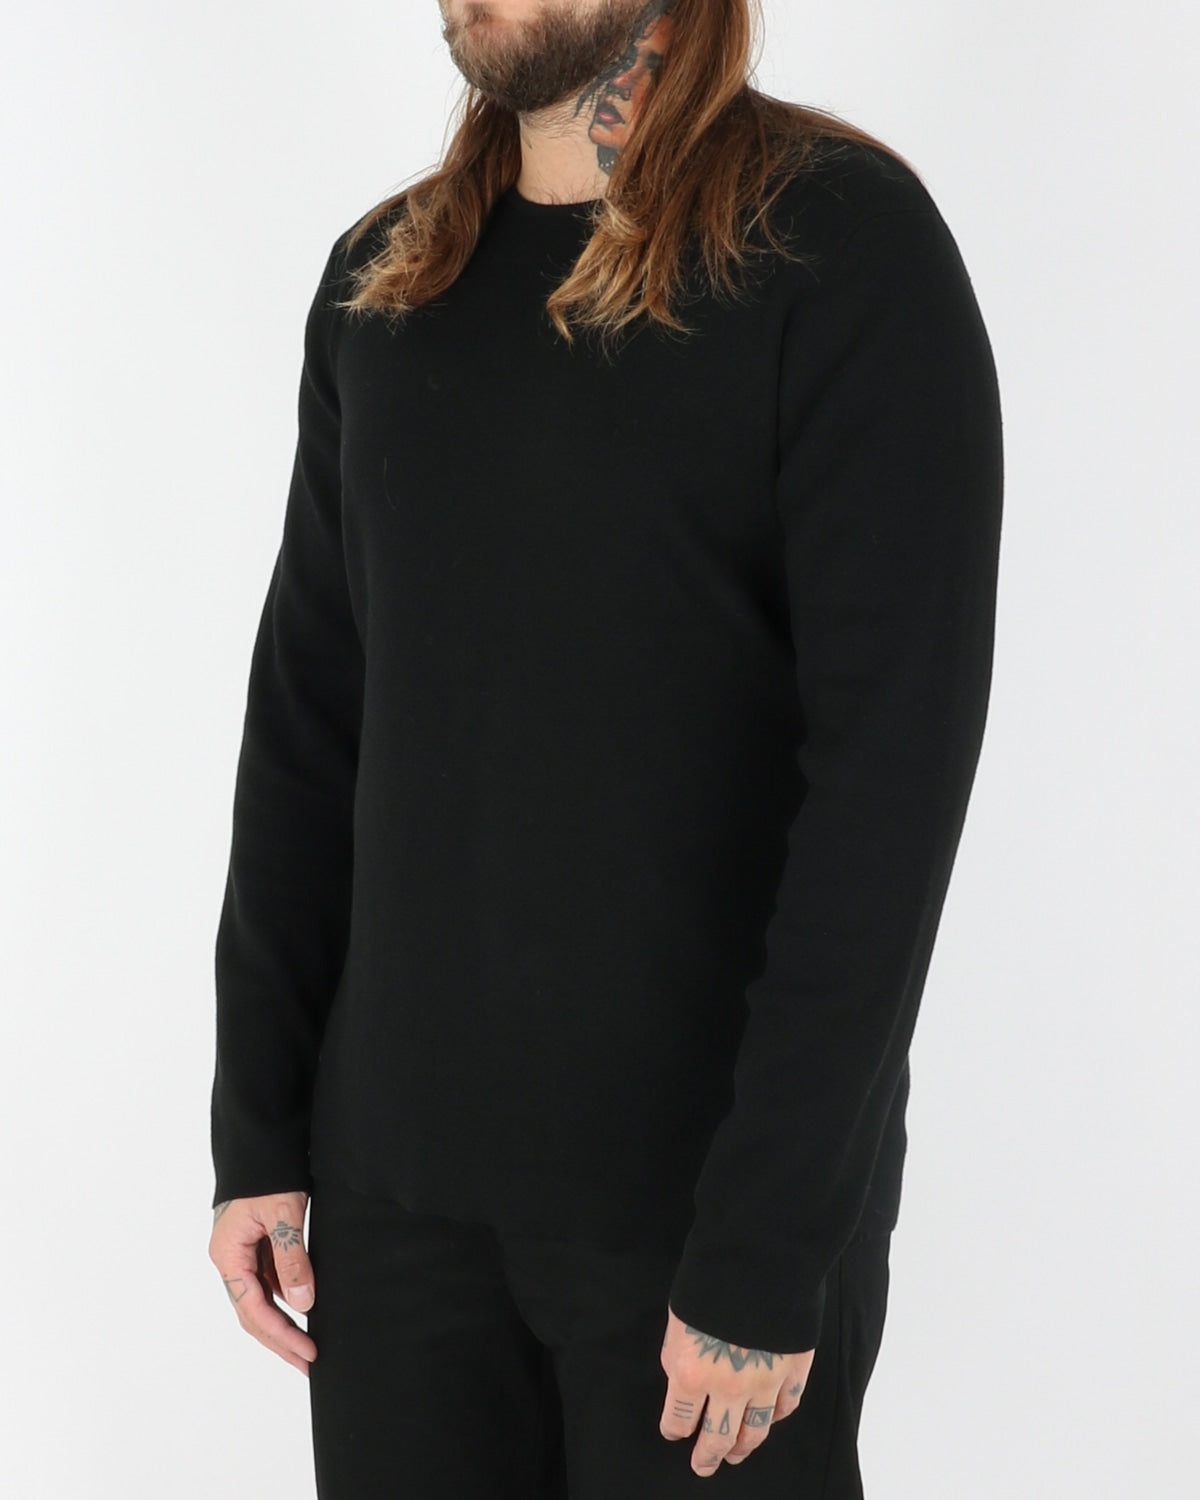 legends_cofu pullover_black_2_3